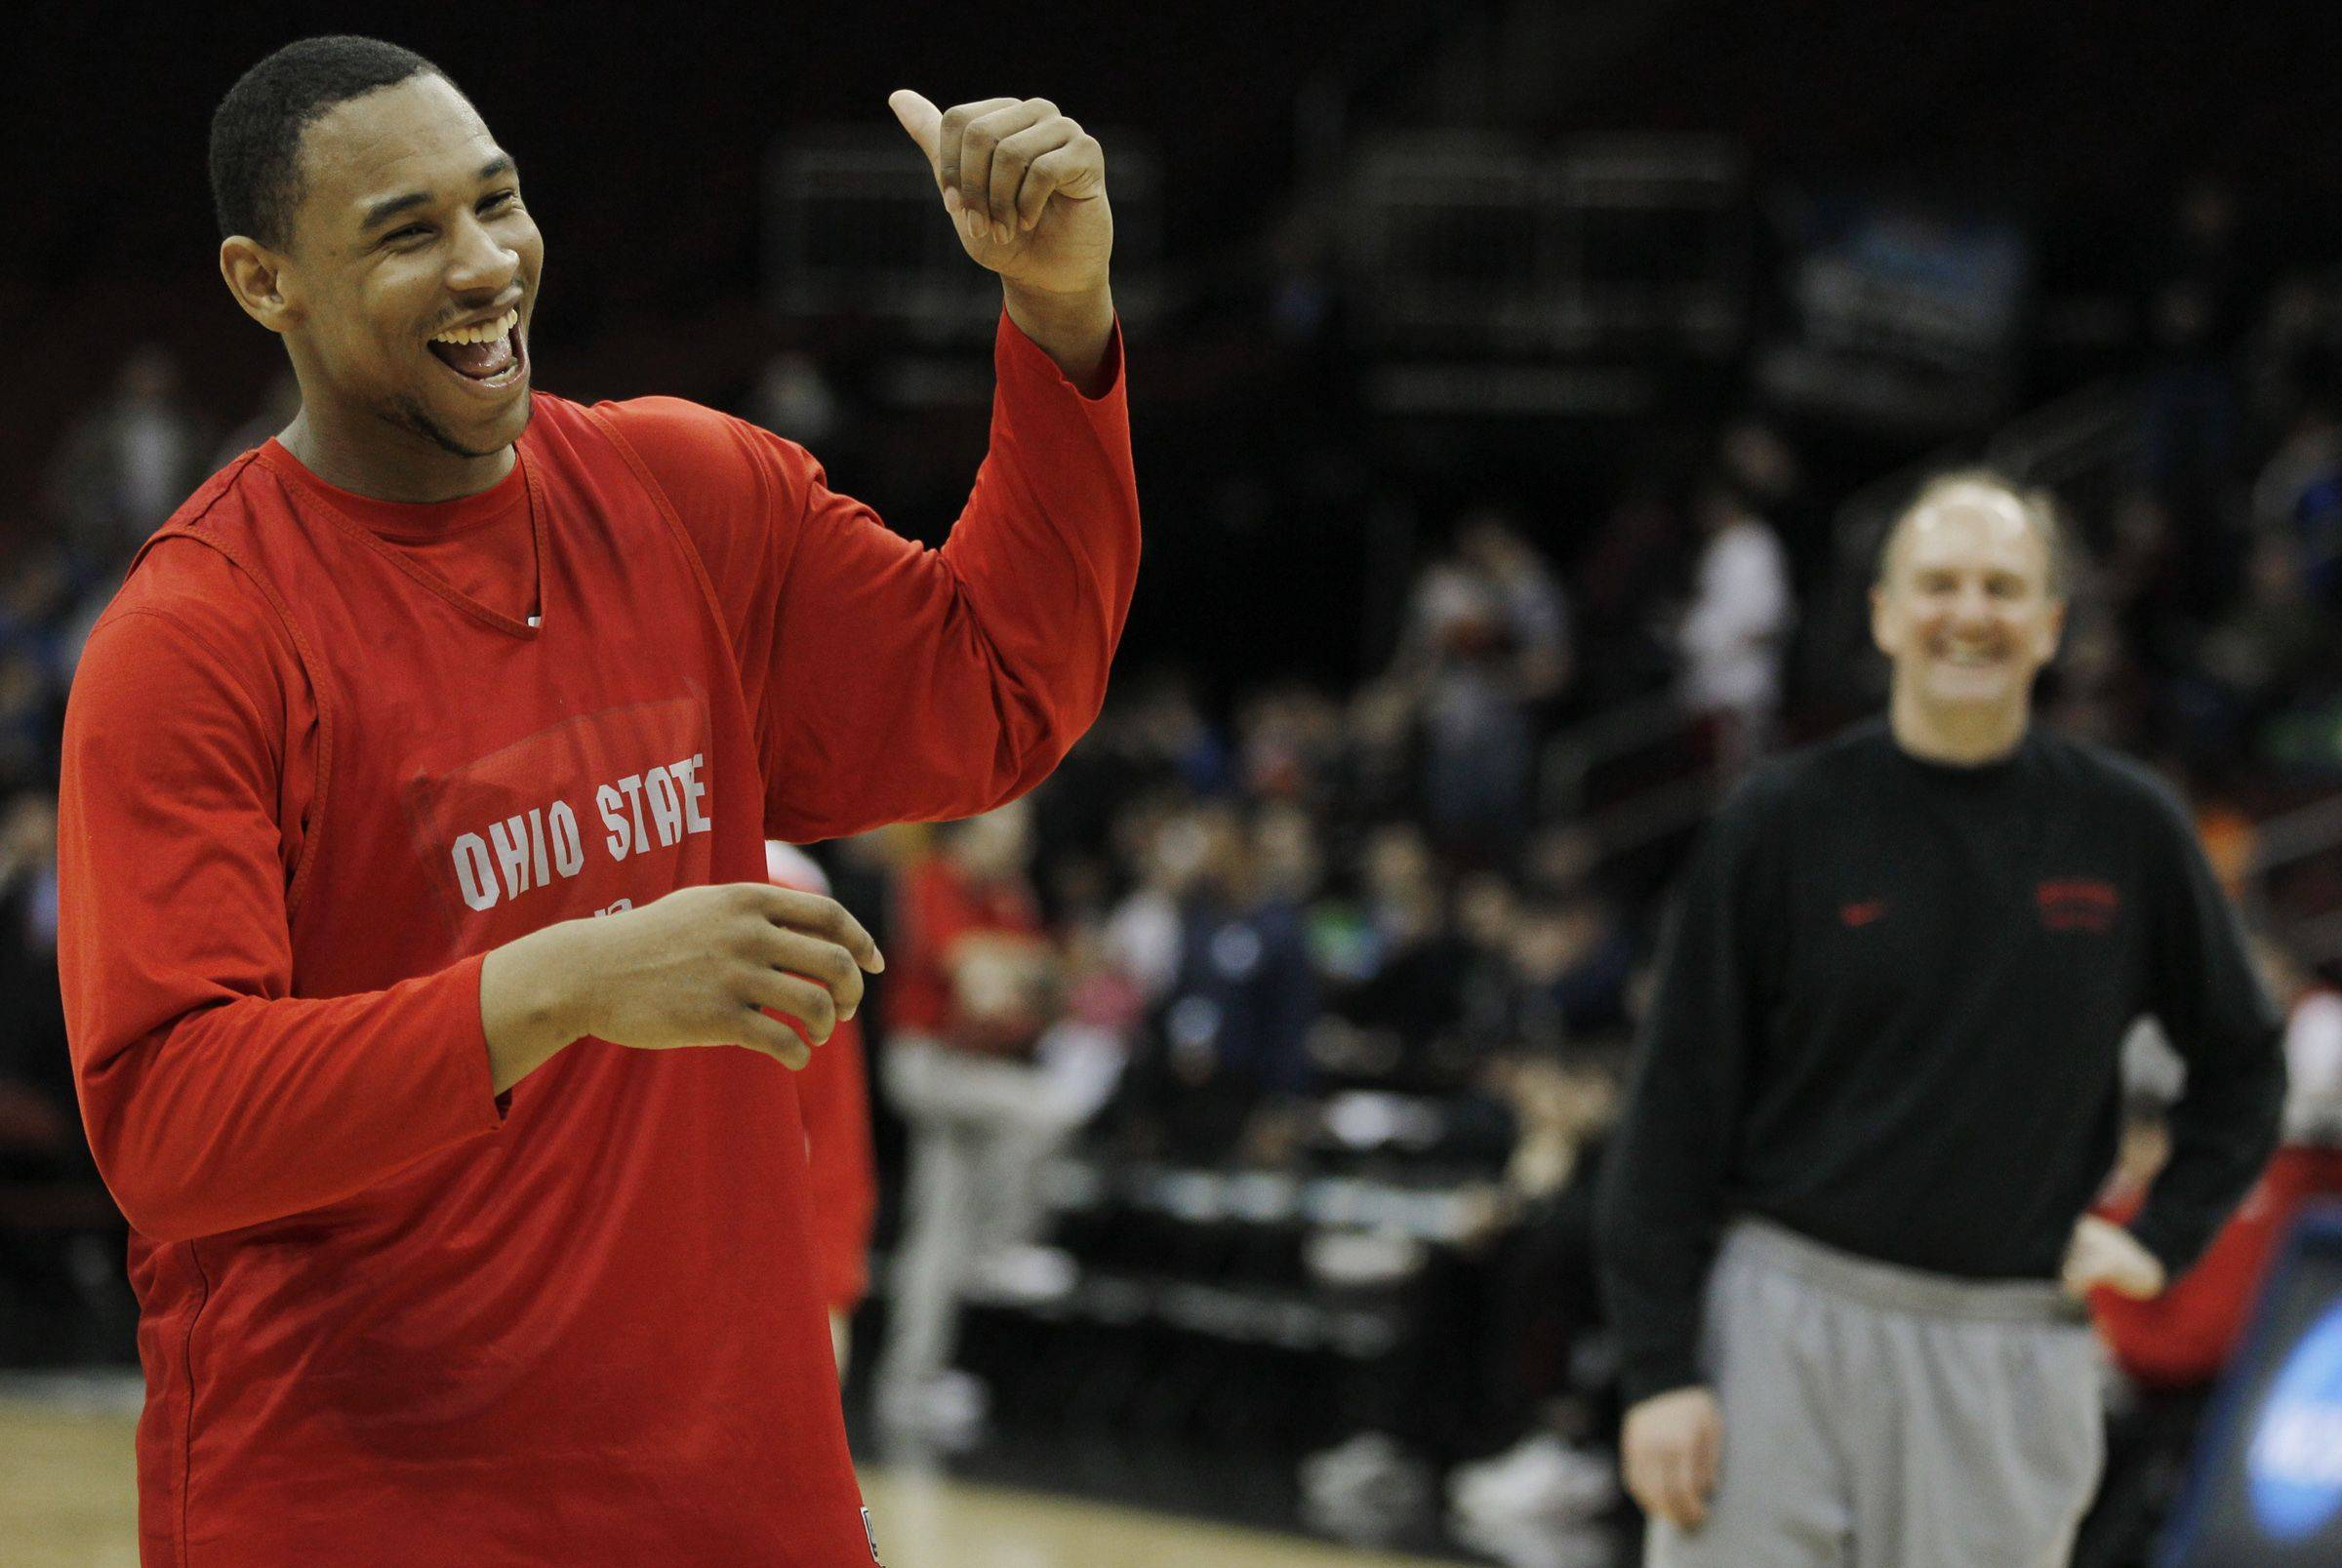 Freshman forward Jared Sullinger and Ohio State take on Kentucky night in an East semifinal.